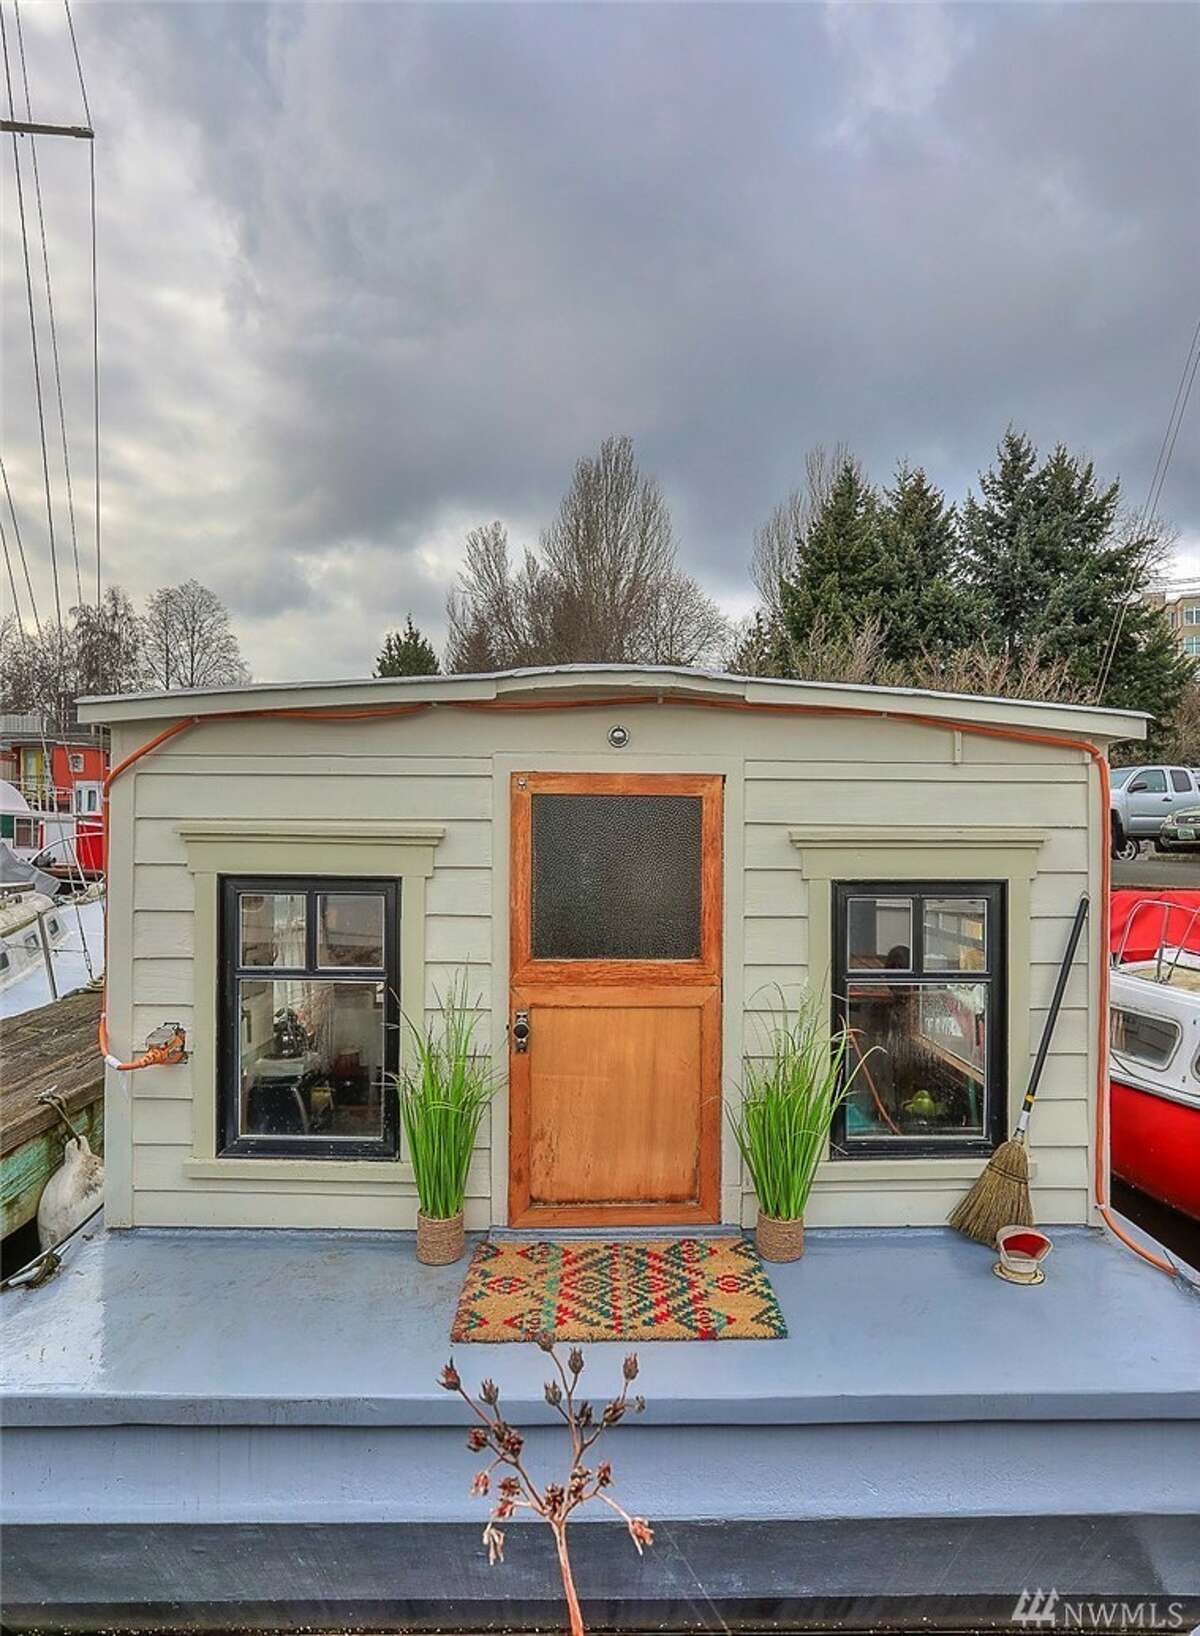 Own your moorage with this charming floating home studio, lovingly rebuilt in 2012 with Craftsman wood-detailing. Next to the bike trail, Gas Works Park, and minutes from U.W. 2143 N. Northlake Way, #3, listed for $255,000. See the full listing here.